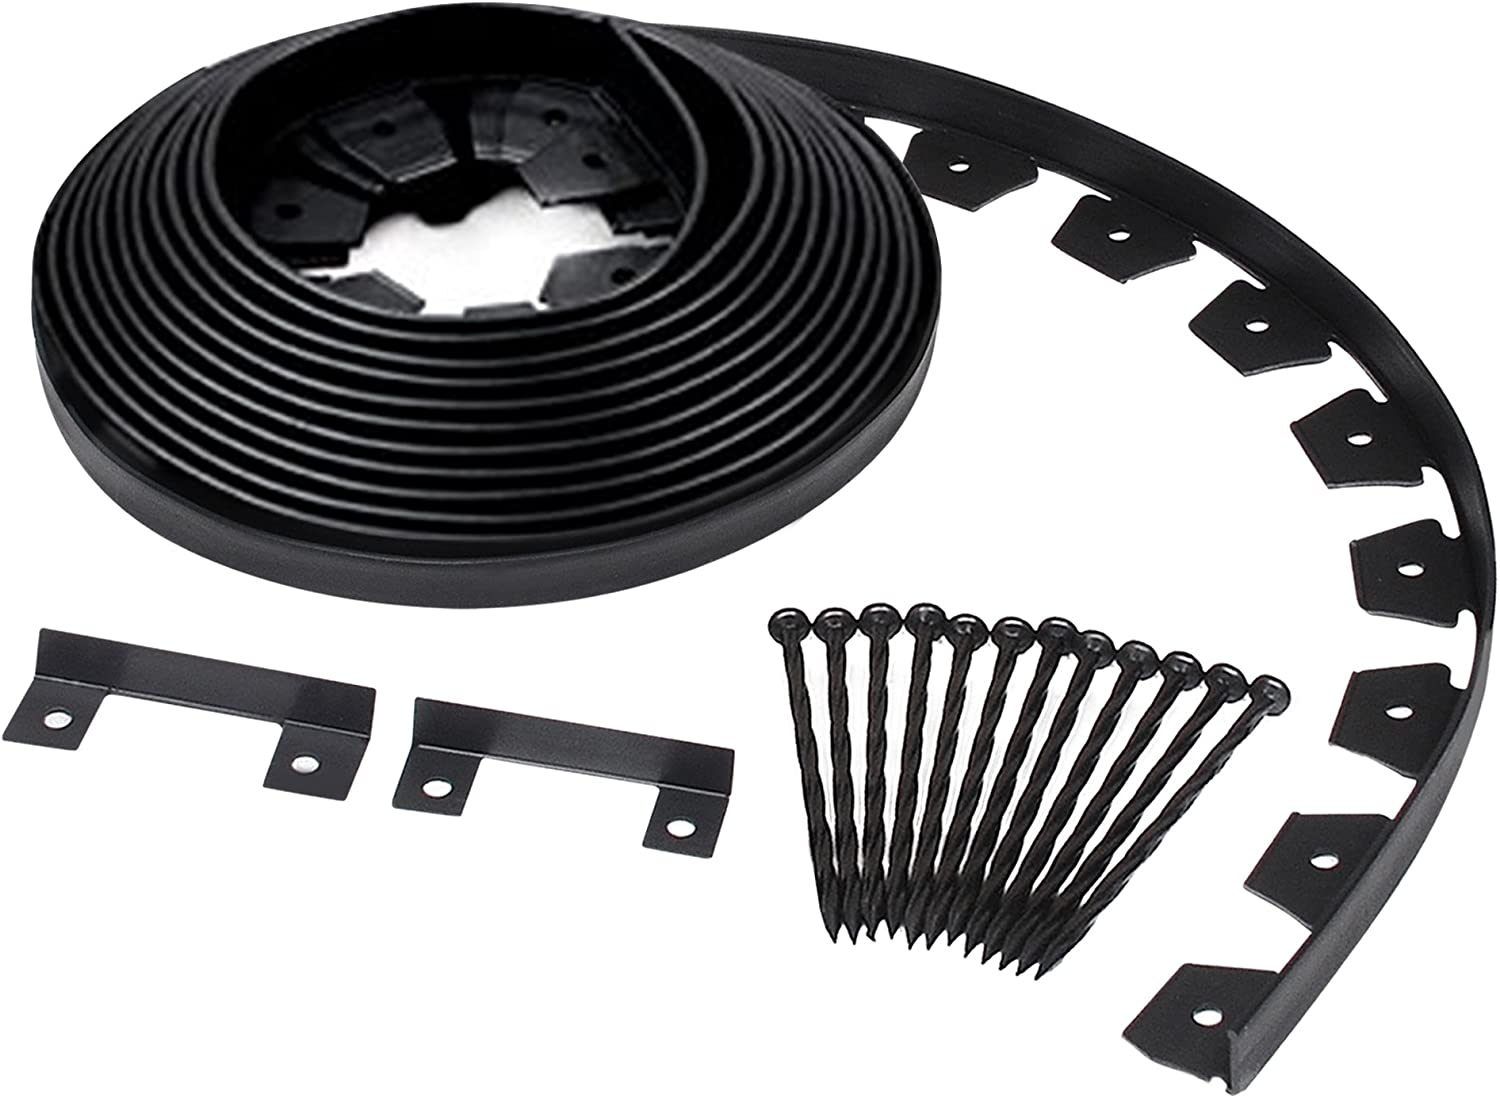 Dimex Edgepro Plastic Heavy Duty No Dig Landscape Edging Kit 40ft Coil Each Pack Of 6 3100 40c 6 Garden Outdoor